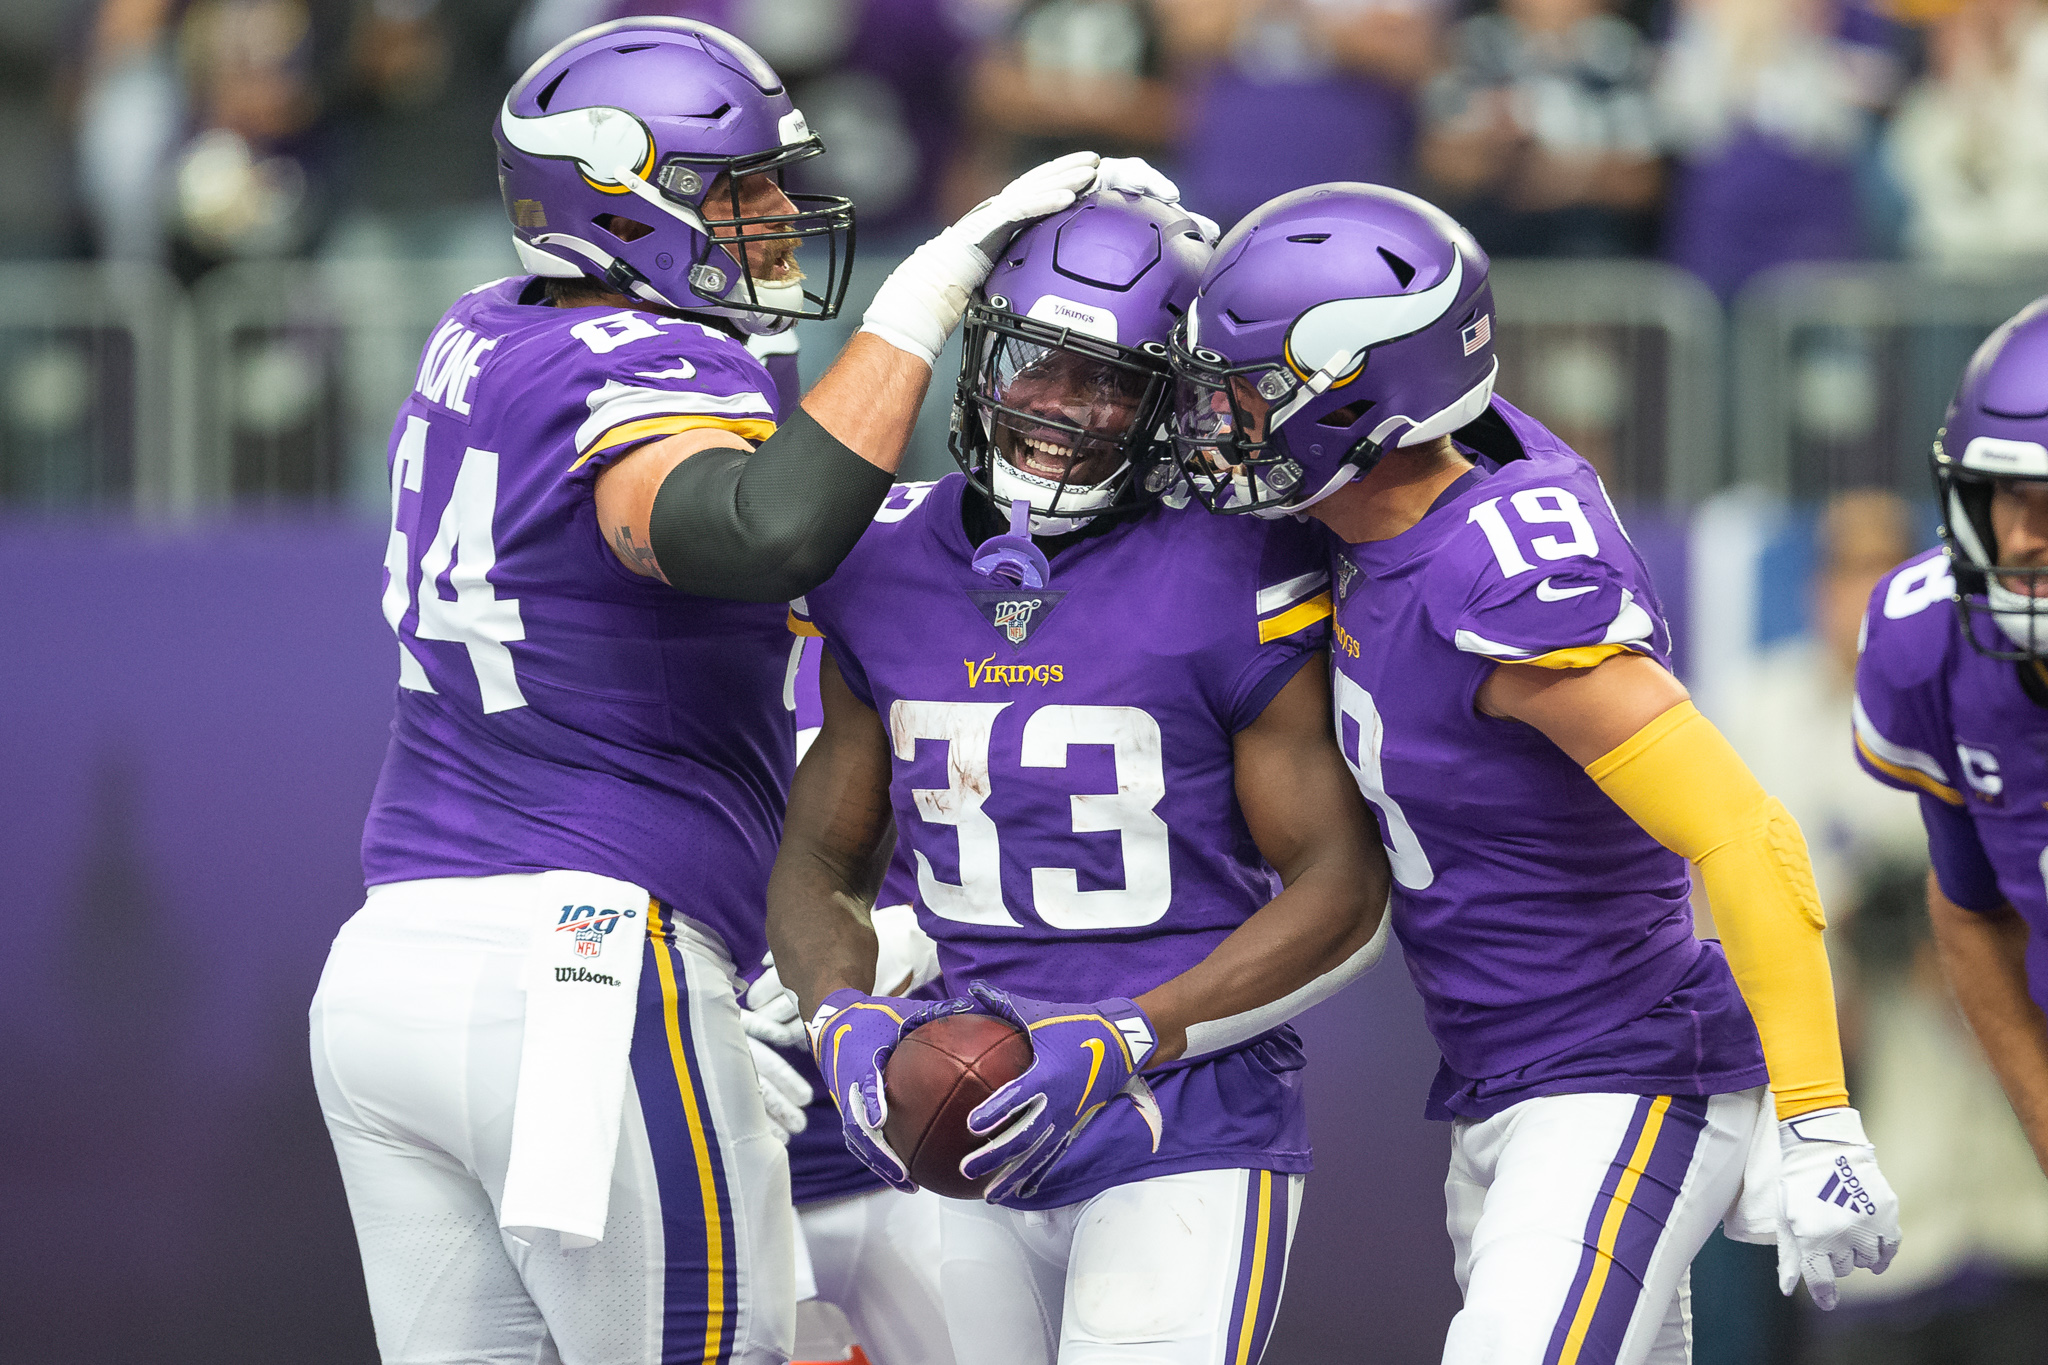 Sep 8, 2019; Minneapolis, MN, USA; Minnesota Vikings running back Dalvin Cook (33) celebrates with offensive guard Josh Kline (64) and wide receiver Adam Thielen (19) after scoring a touchdown against the Atlanta Falcons during the first quarter at U.S. Bank Stadium. Mandatory Credit: Harrison Barden-USA TODAY Sports